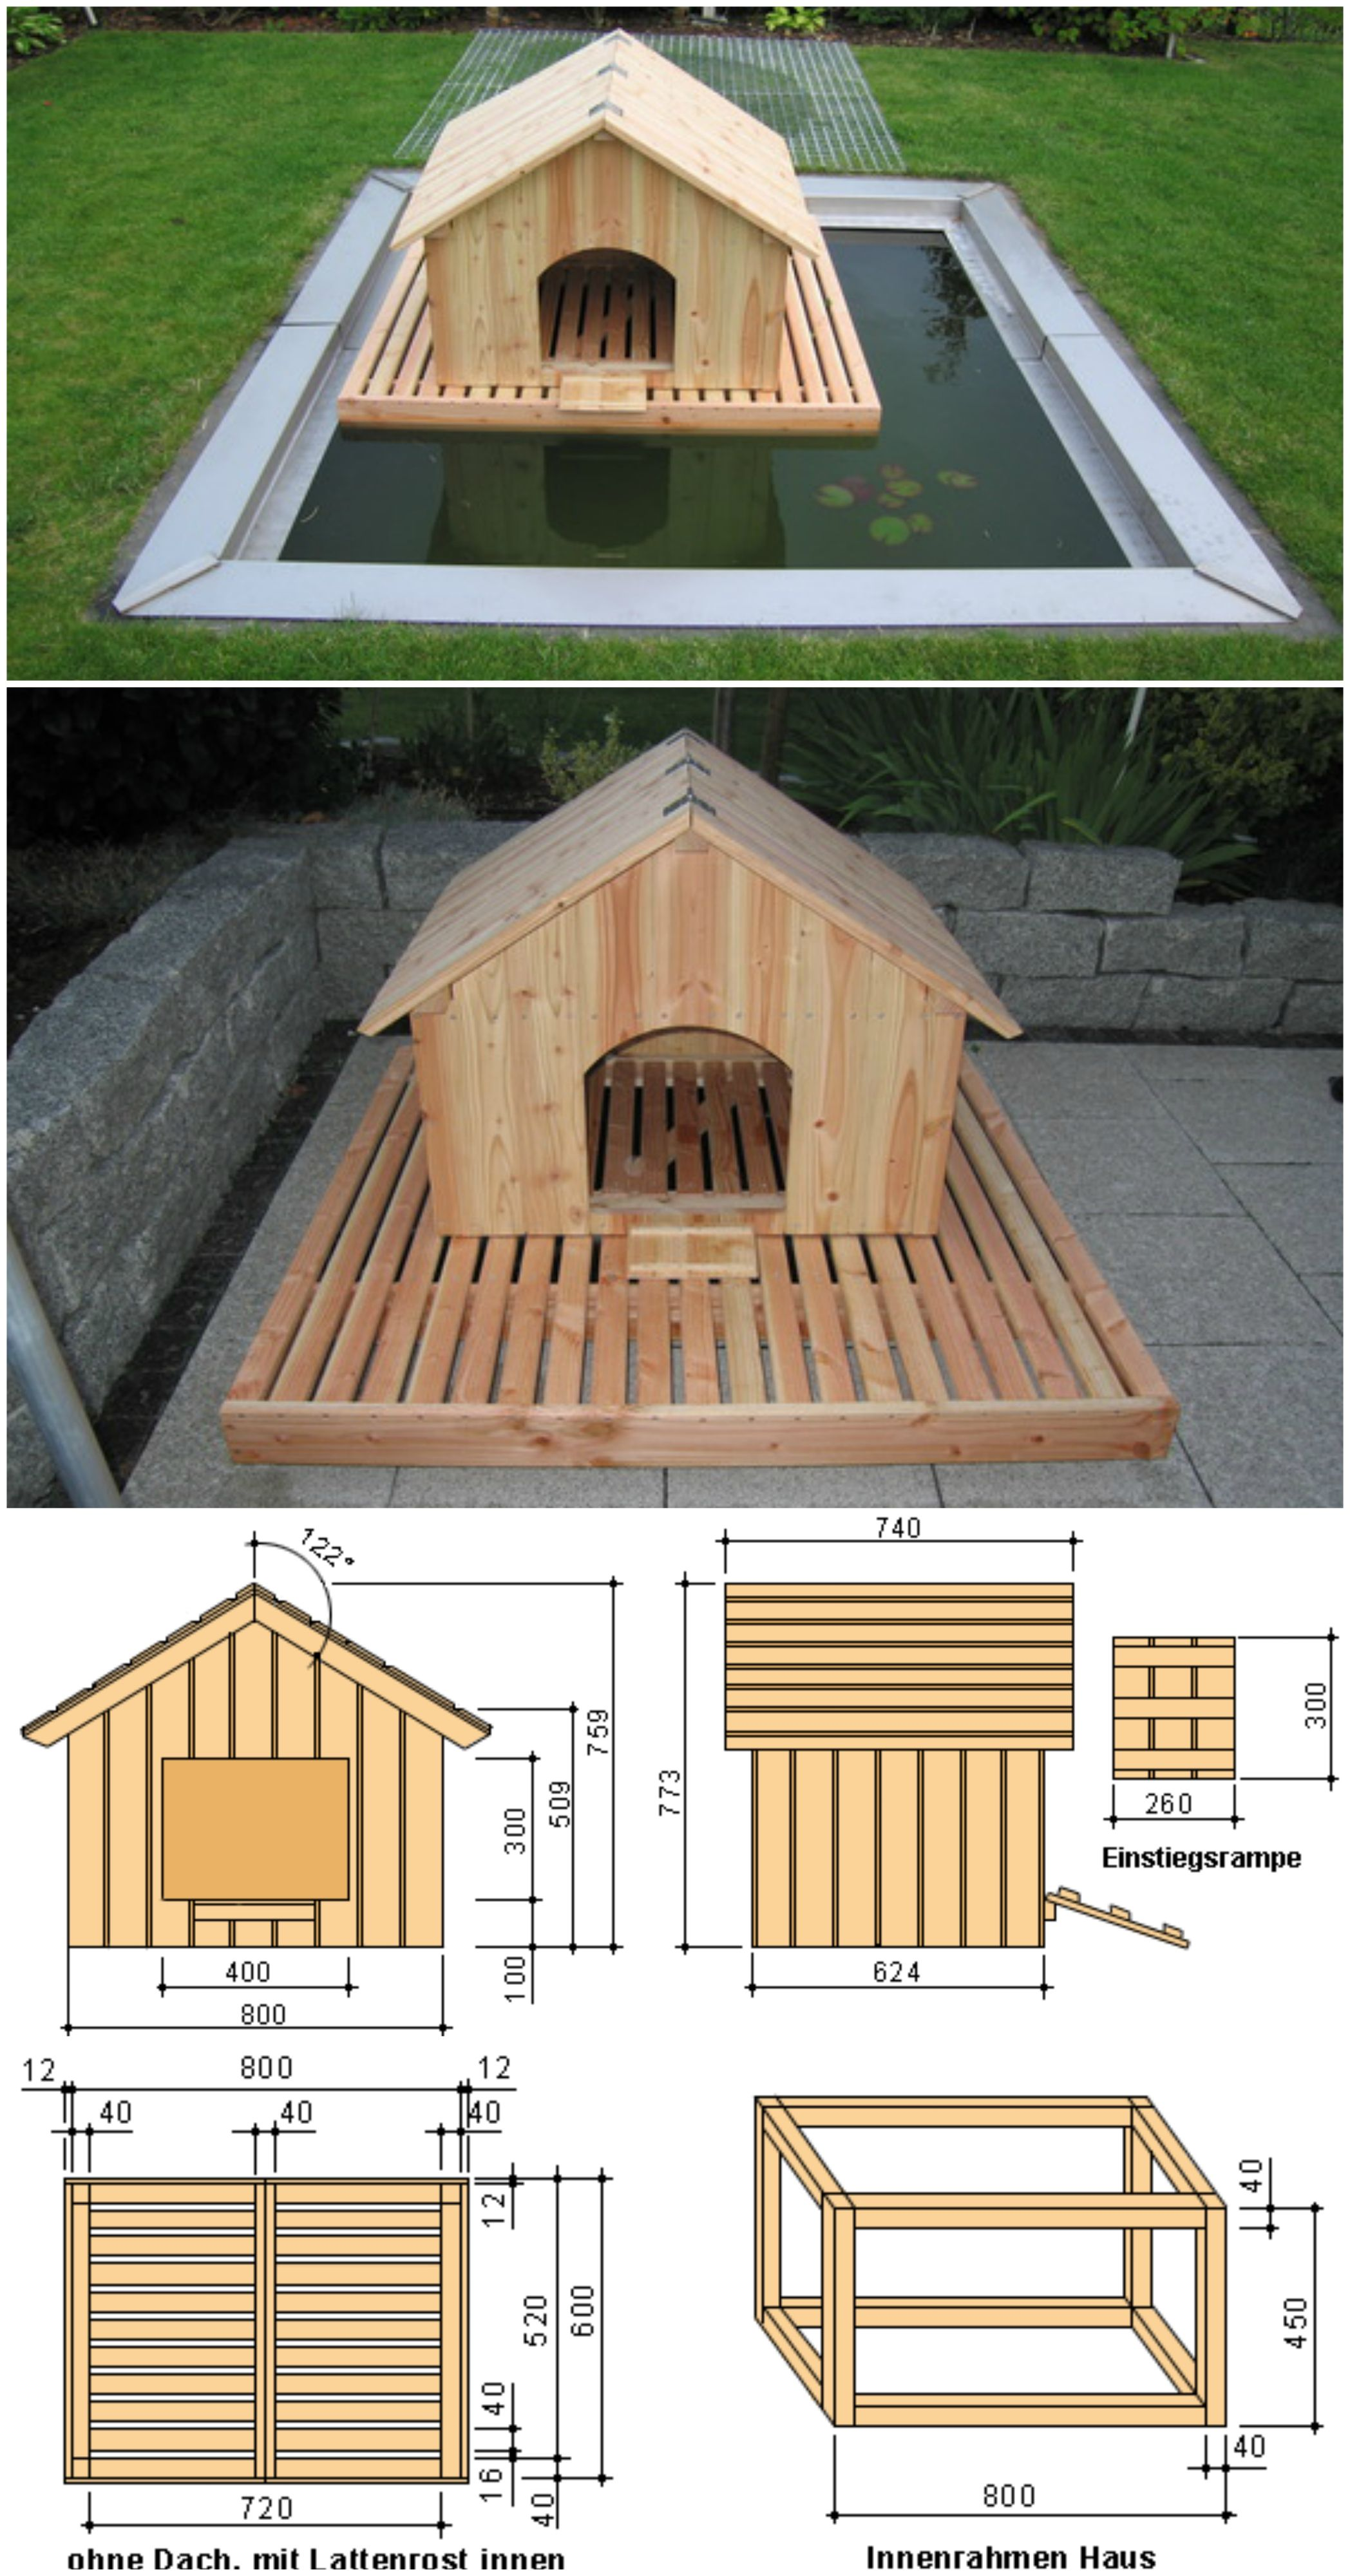 How to build a floating duck house ducks pinterest for How to build a duck pen house